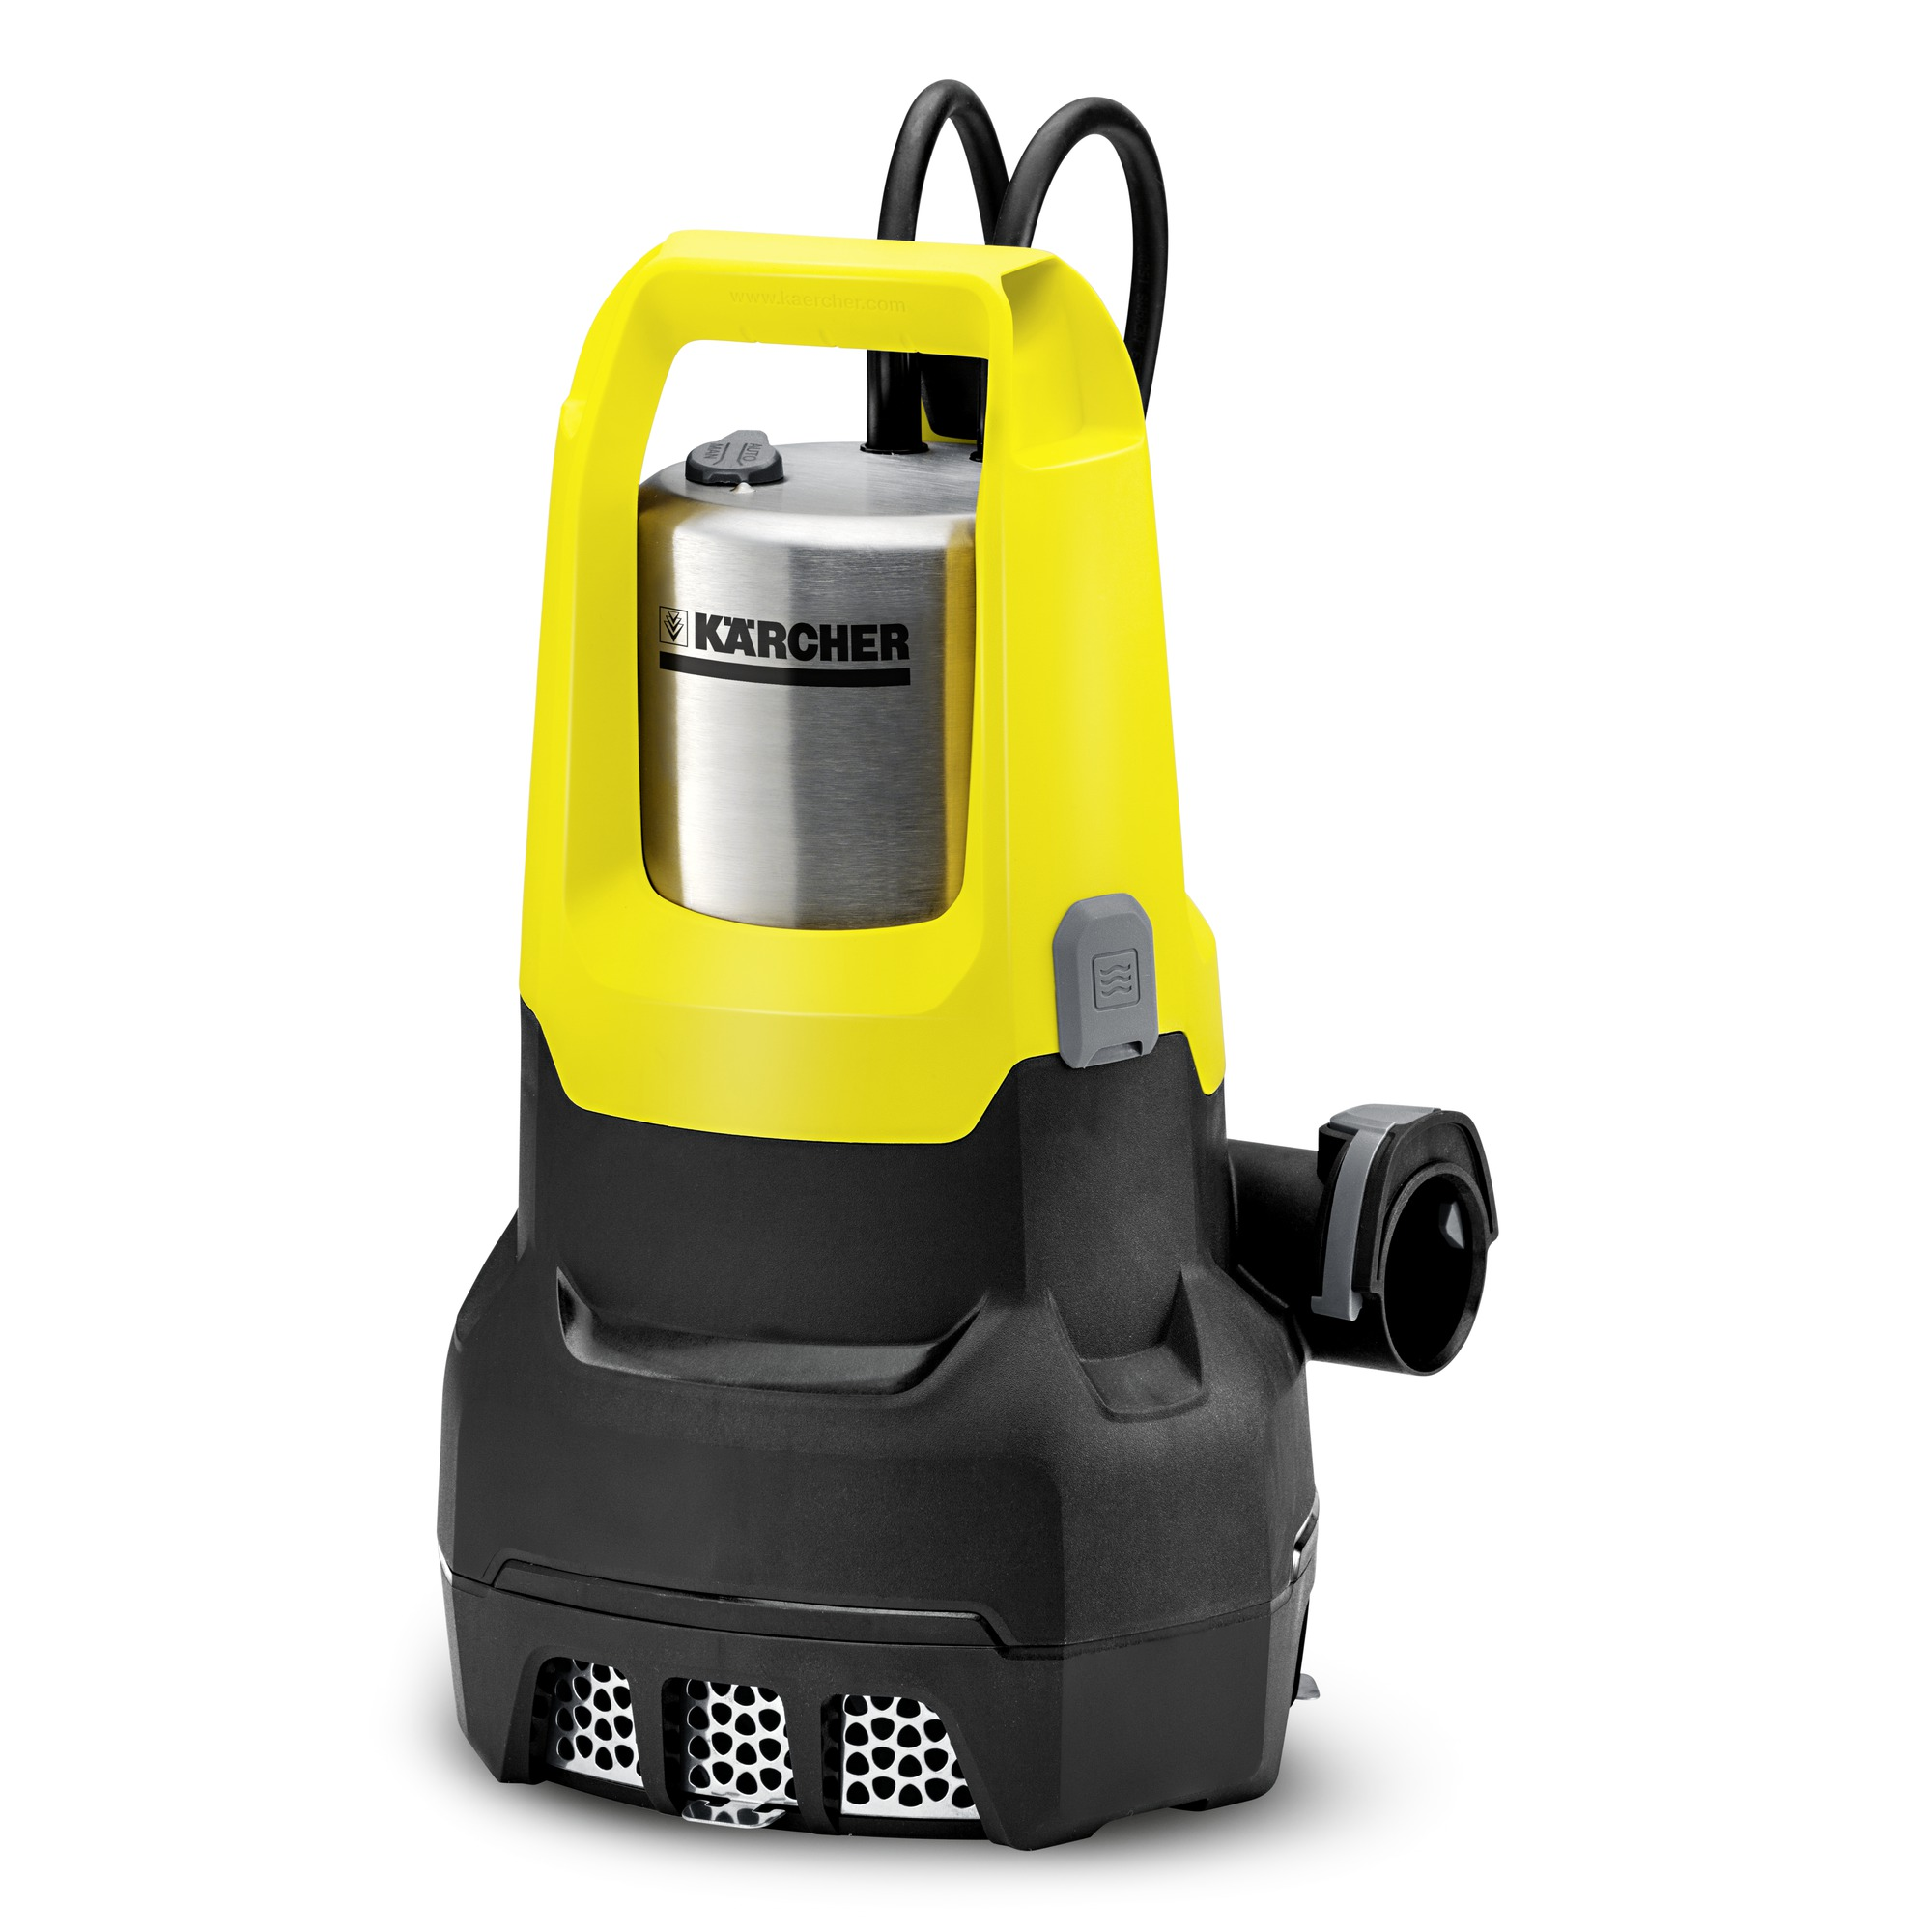 SP 7 Dirt Inox 1.645-506.0 KARCHER - KARCHER PREMIER CENTER